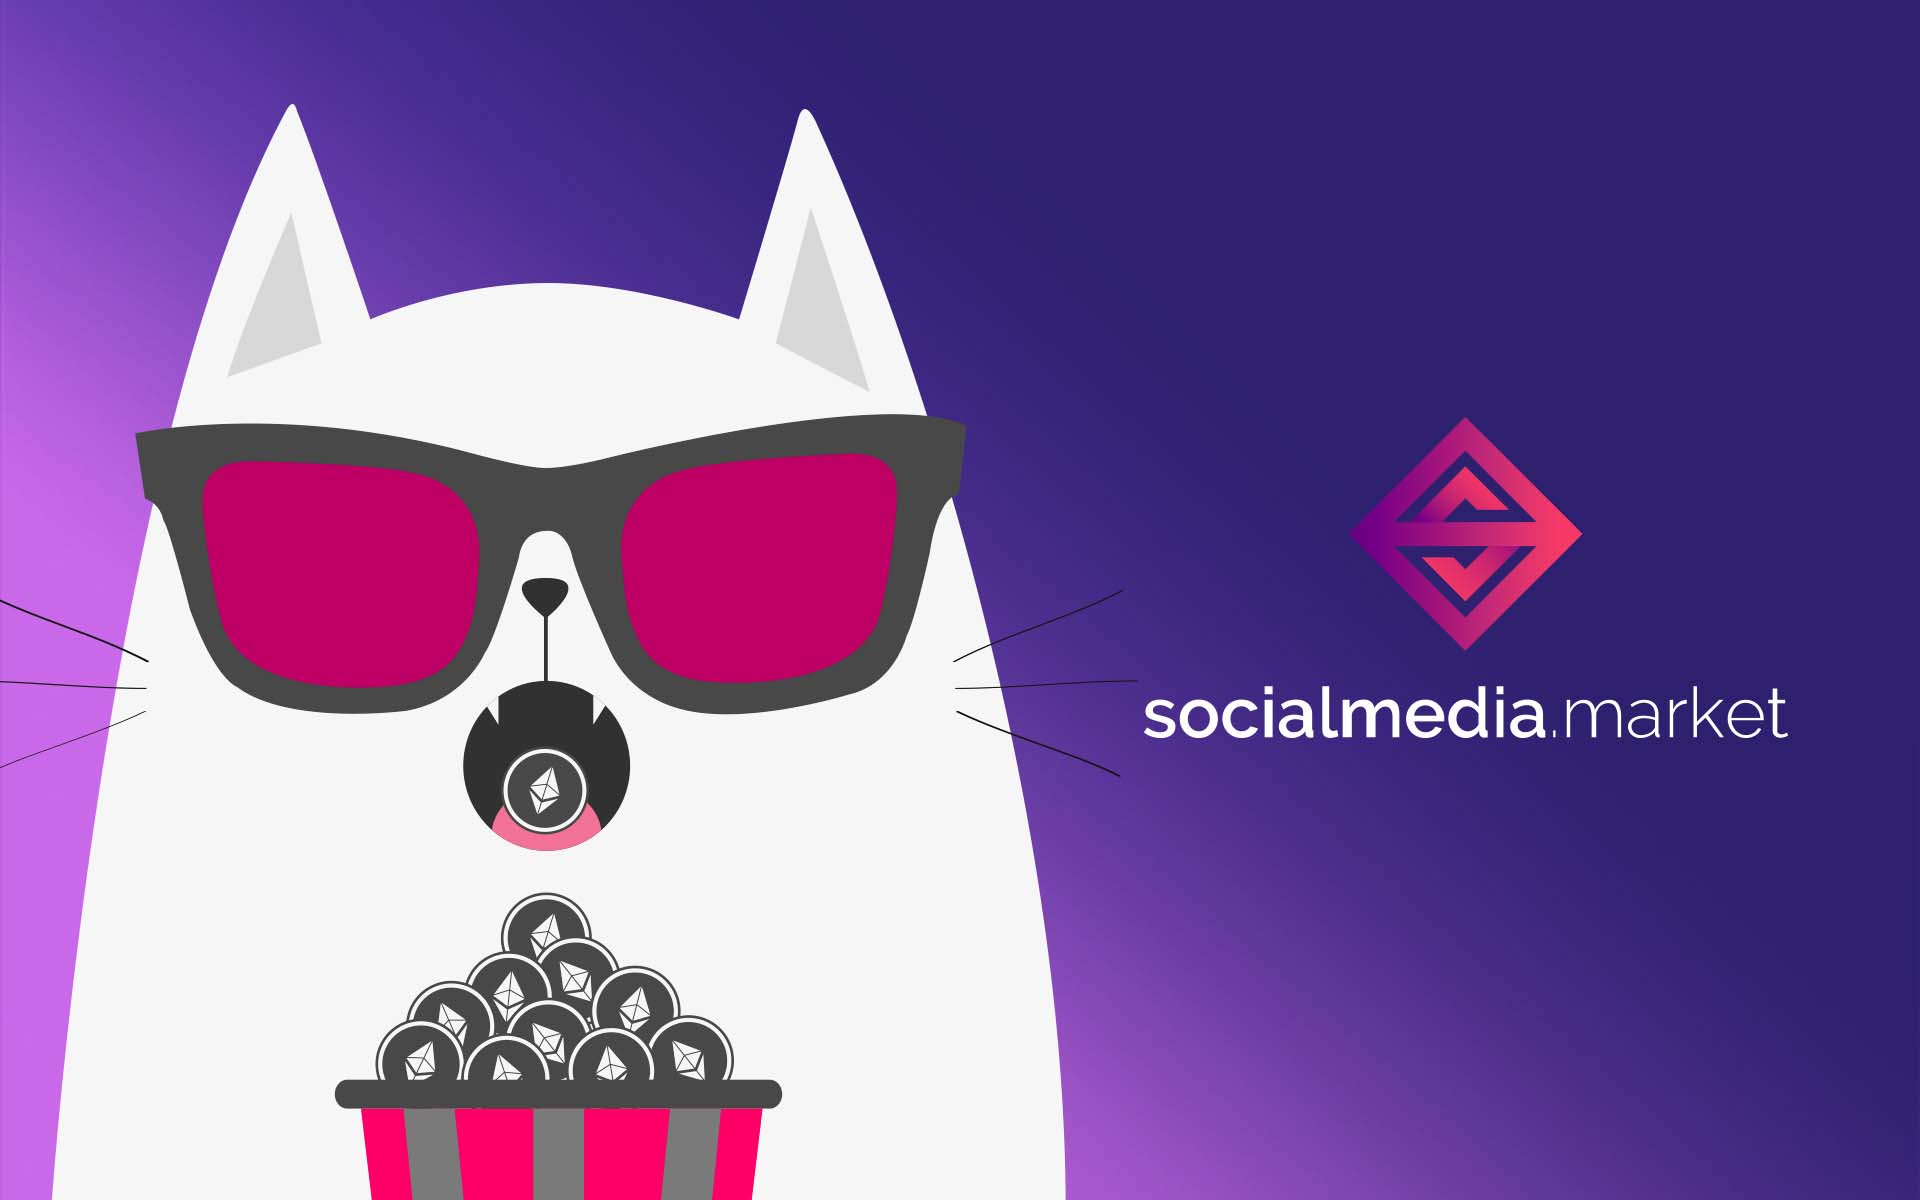 Get Meowed! SocialMedia.Market Rewards Contributors with CryptoKitties